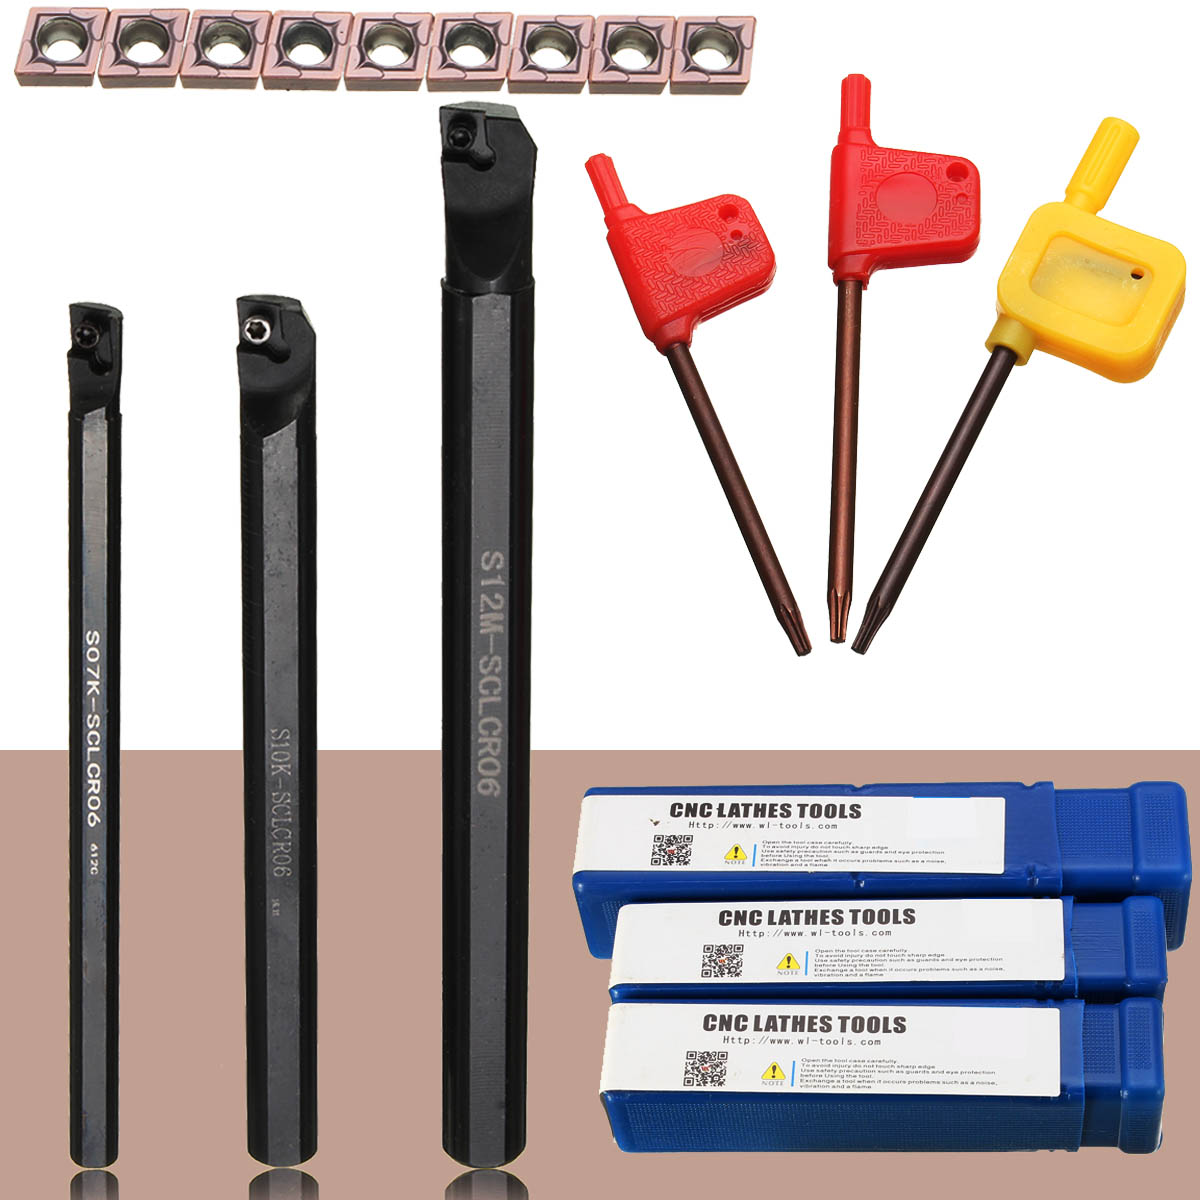 1pcs S07K-SCLCR06+1pcs S10K-SCLCR06+1pcs S12M-SCLCR06 Lathe Holder Turning Tool Boring Bar 7/10/12mm + 10pcs CCMT0602 Inserts